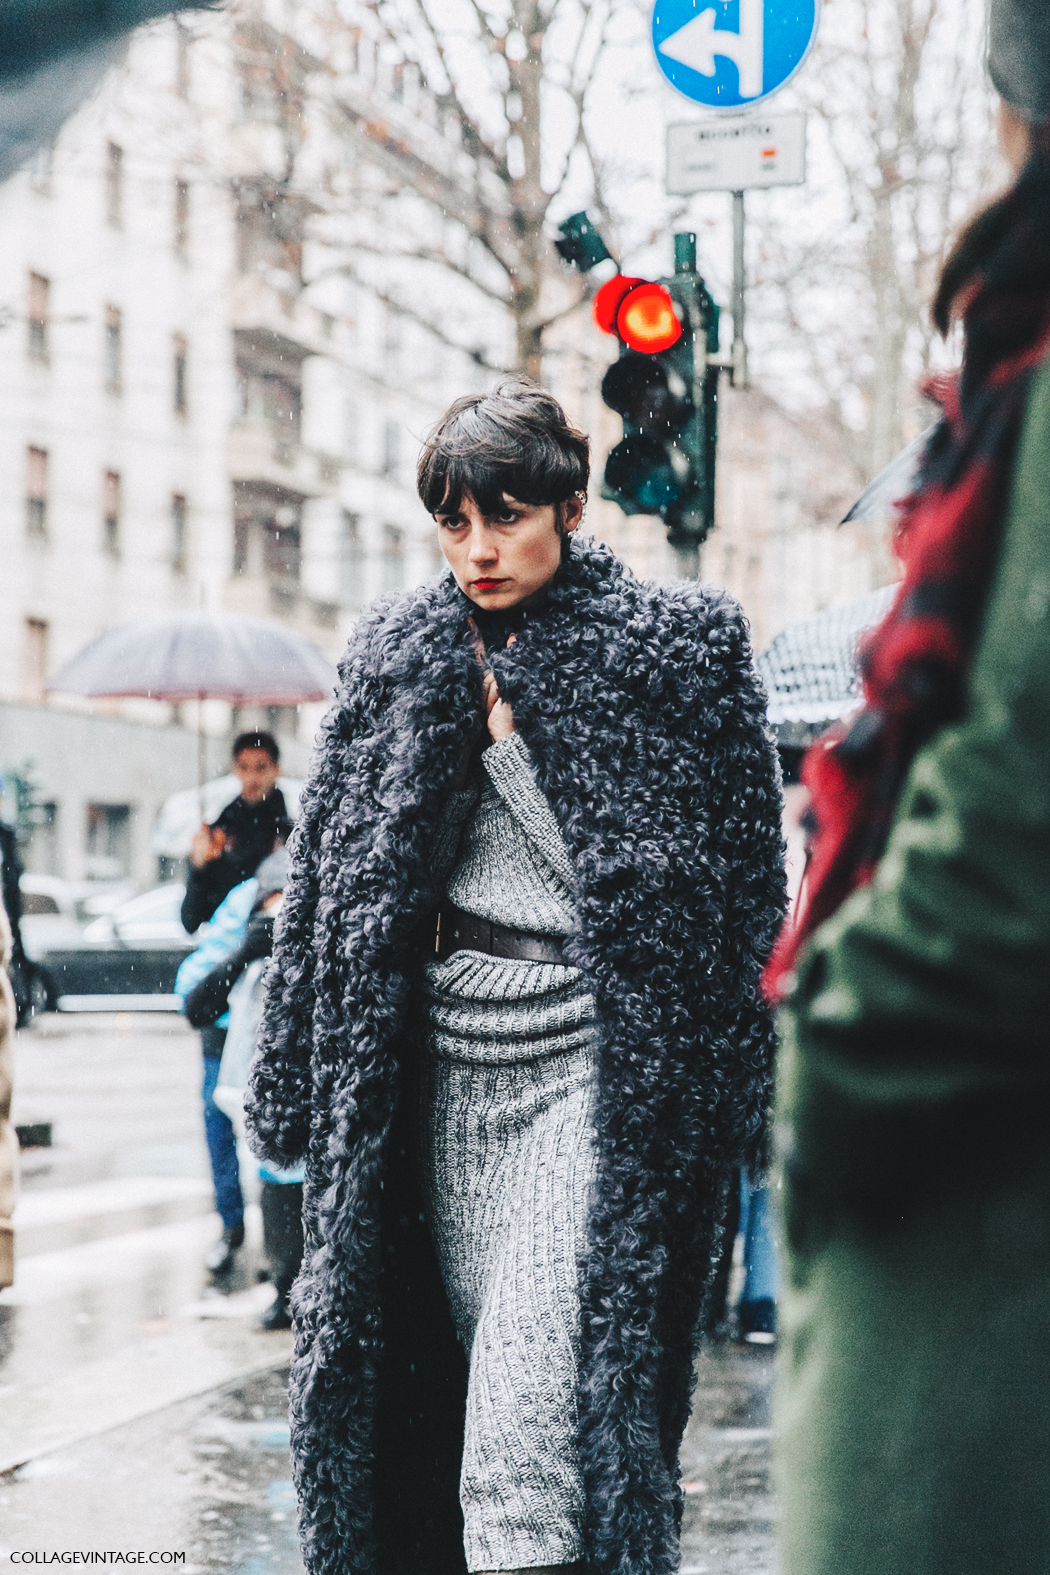 Milan_Fashion_Week_Fall_16-MFW-Street_Style-Collage_Vintage-Eva_Geraldine-